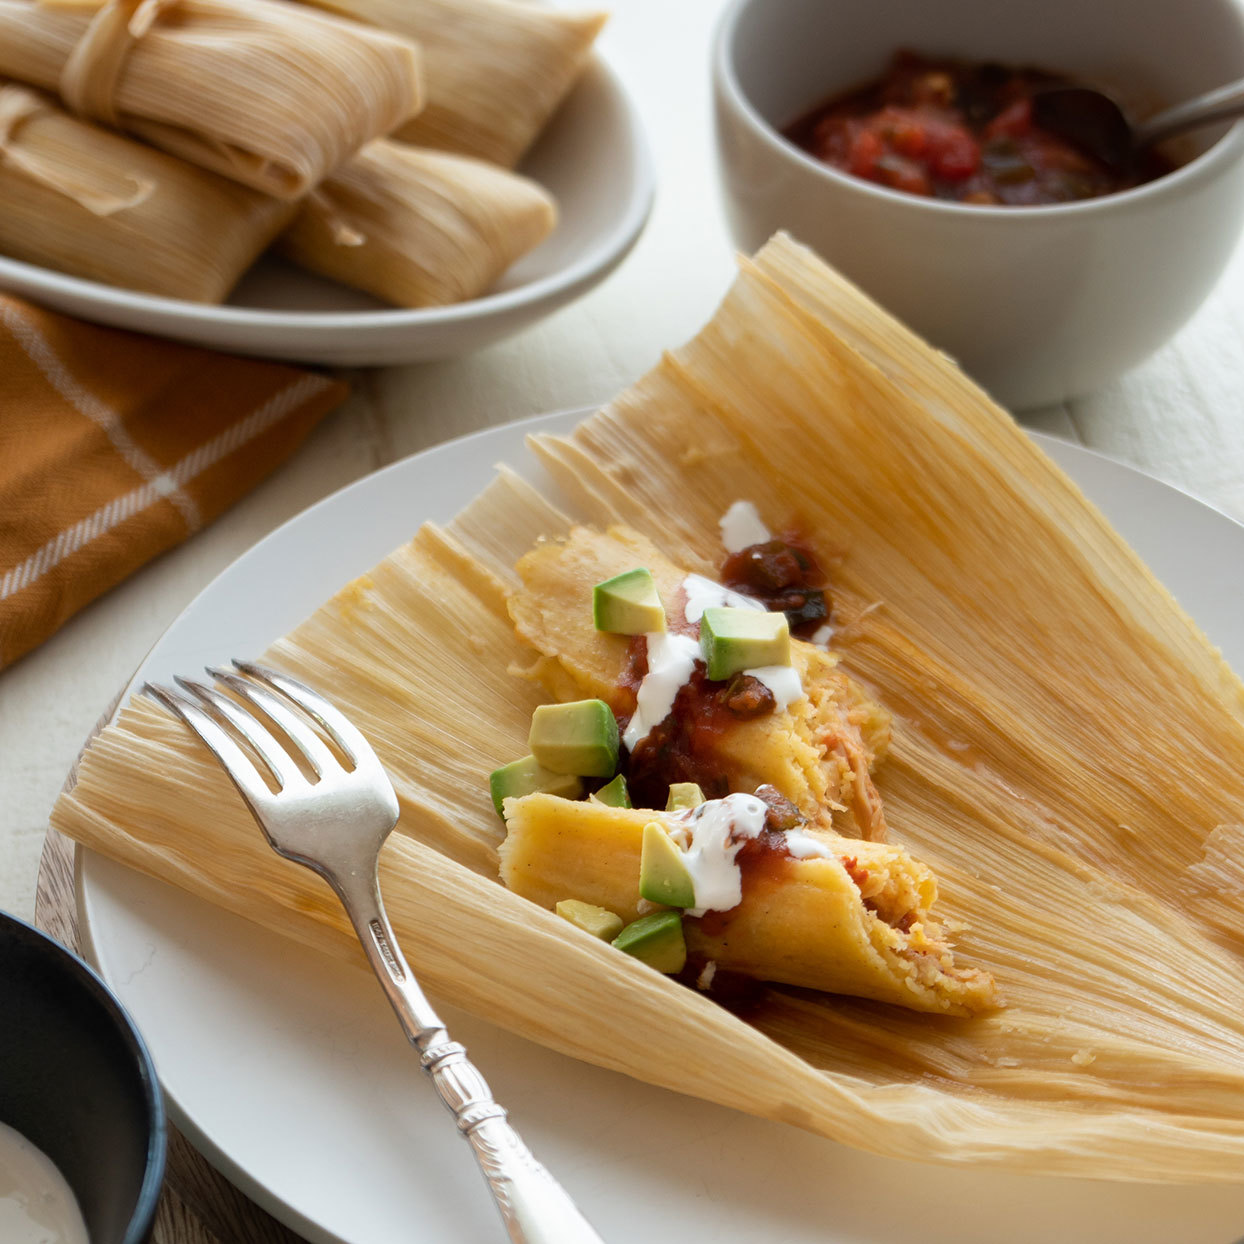 Why I Follow My Grandmother's Tradition of Making Tamales for Christmas